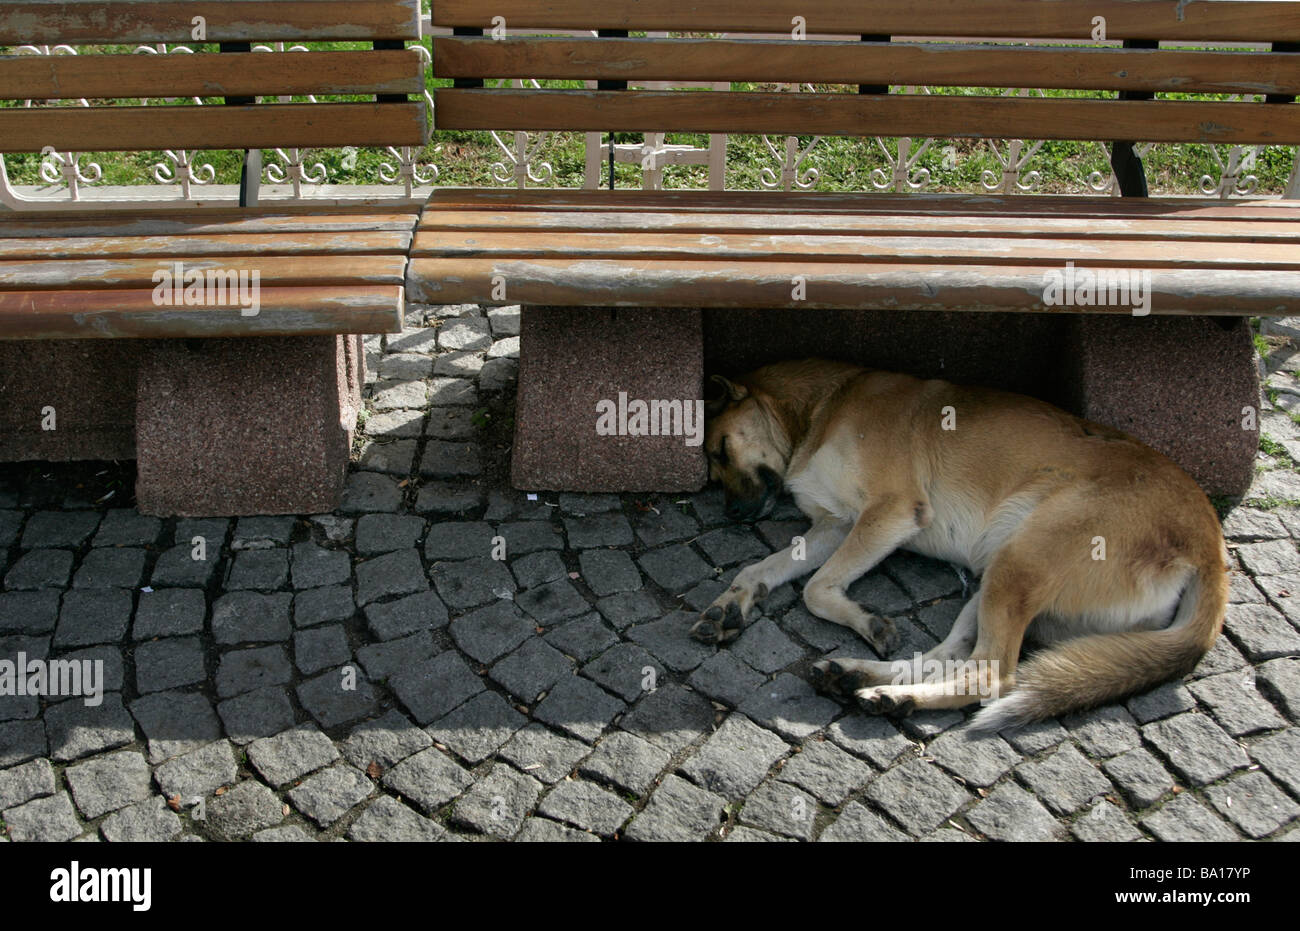 A stray dog sleeps in the shade ot a park bench in Istanbul in Turkey - Stock Image